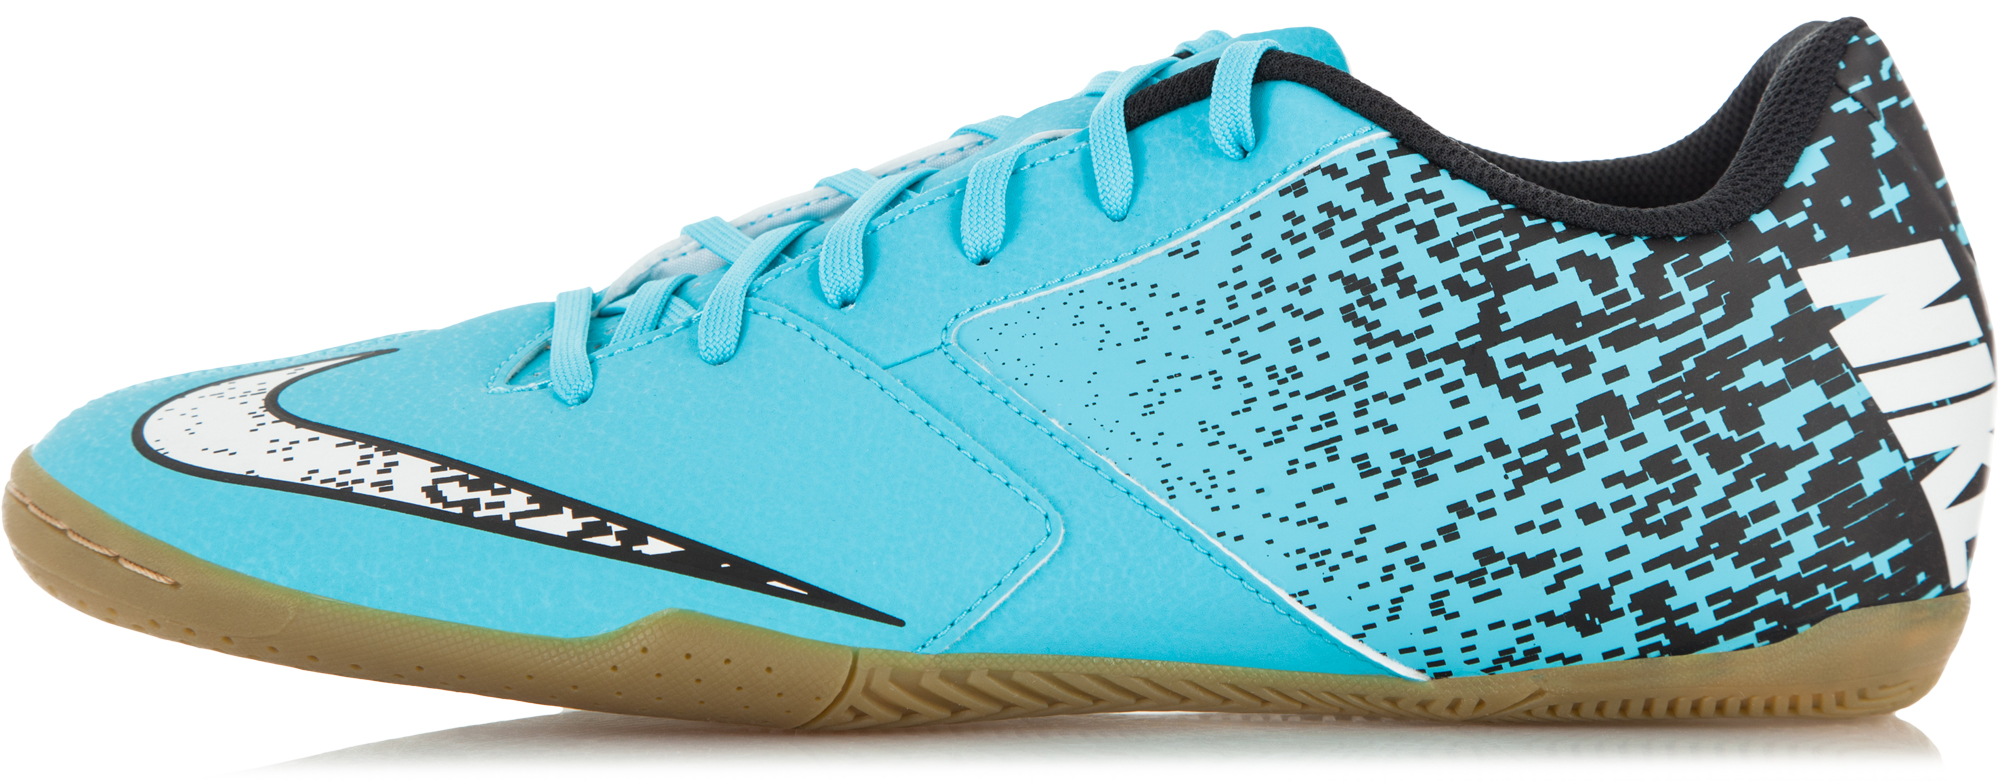 Nike Бутсы мужские Nike BombaX IC бутсы nike бутсы jr mercurialx vapor xi ic